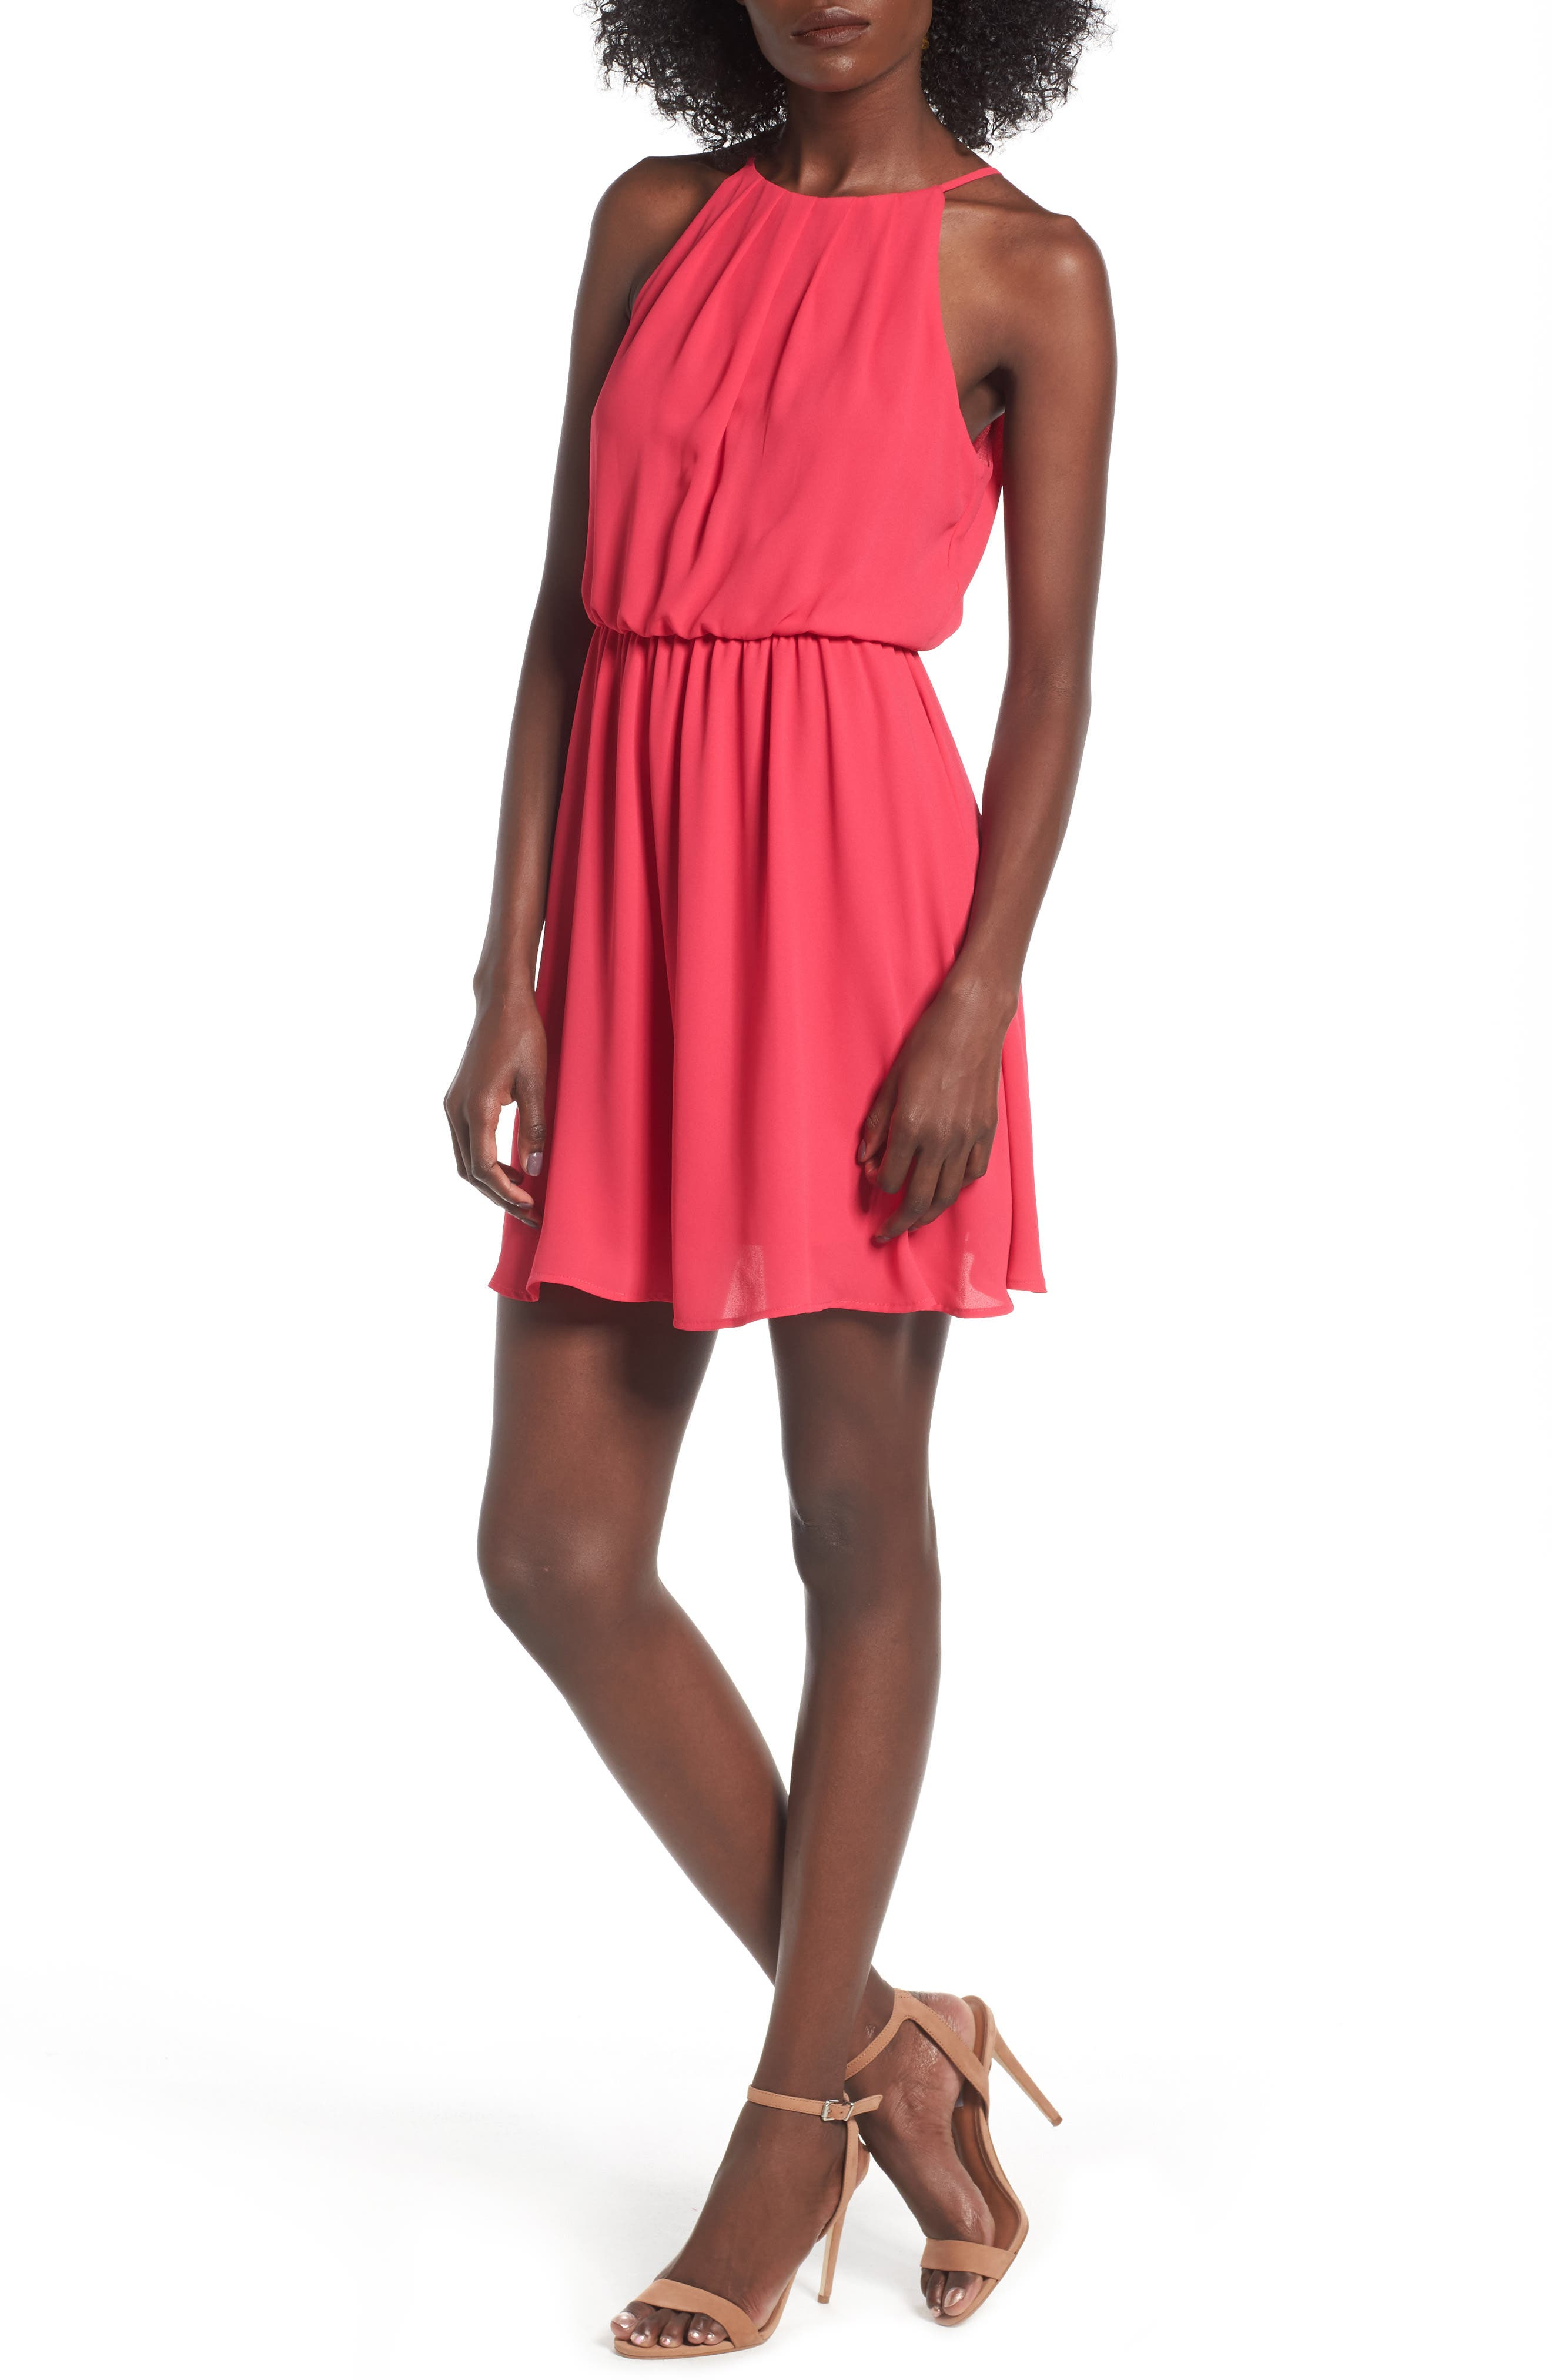 Alternate Image 1 Selected - Blouson Chiffon Skater Dress